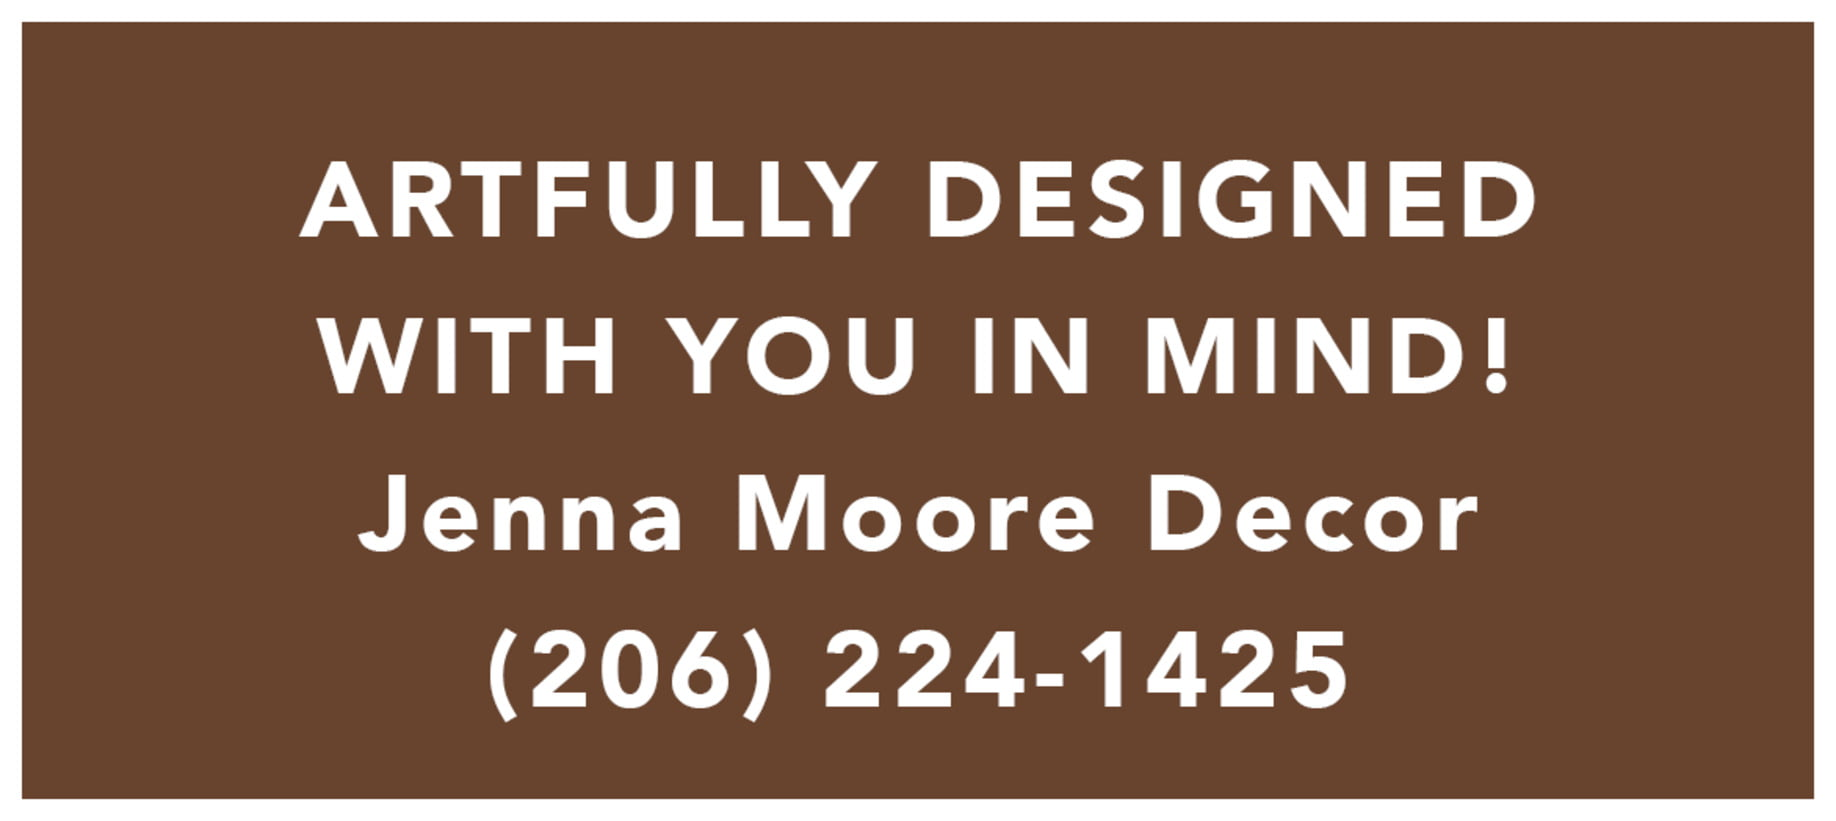 Small Rectangular Custom Text Labels - Chocolate - Elements Icon